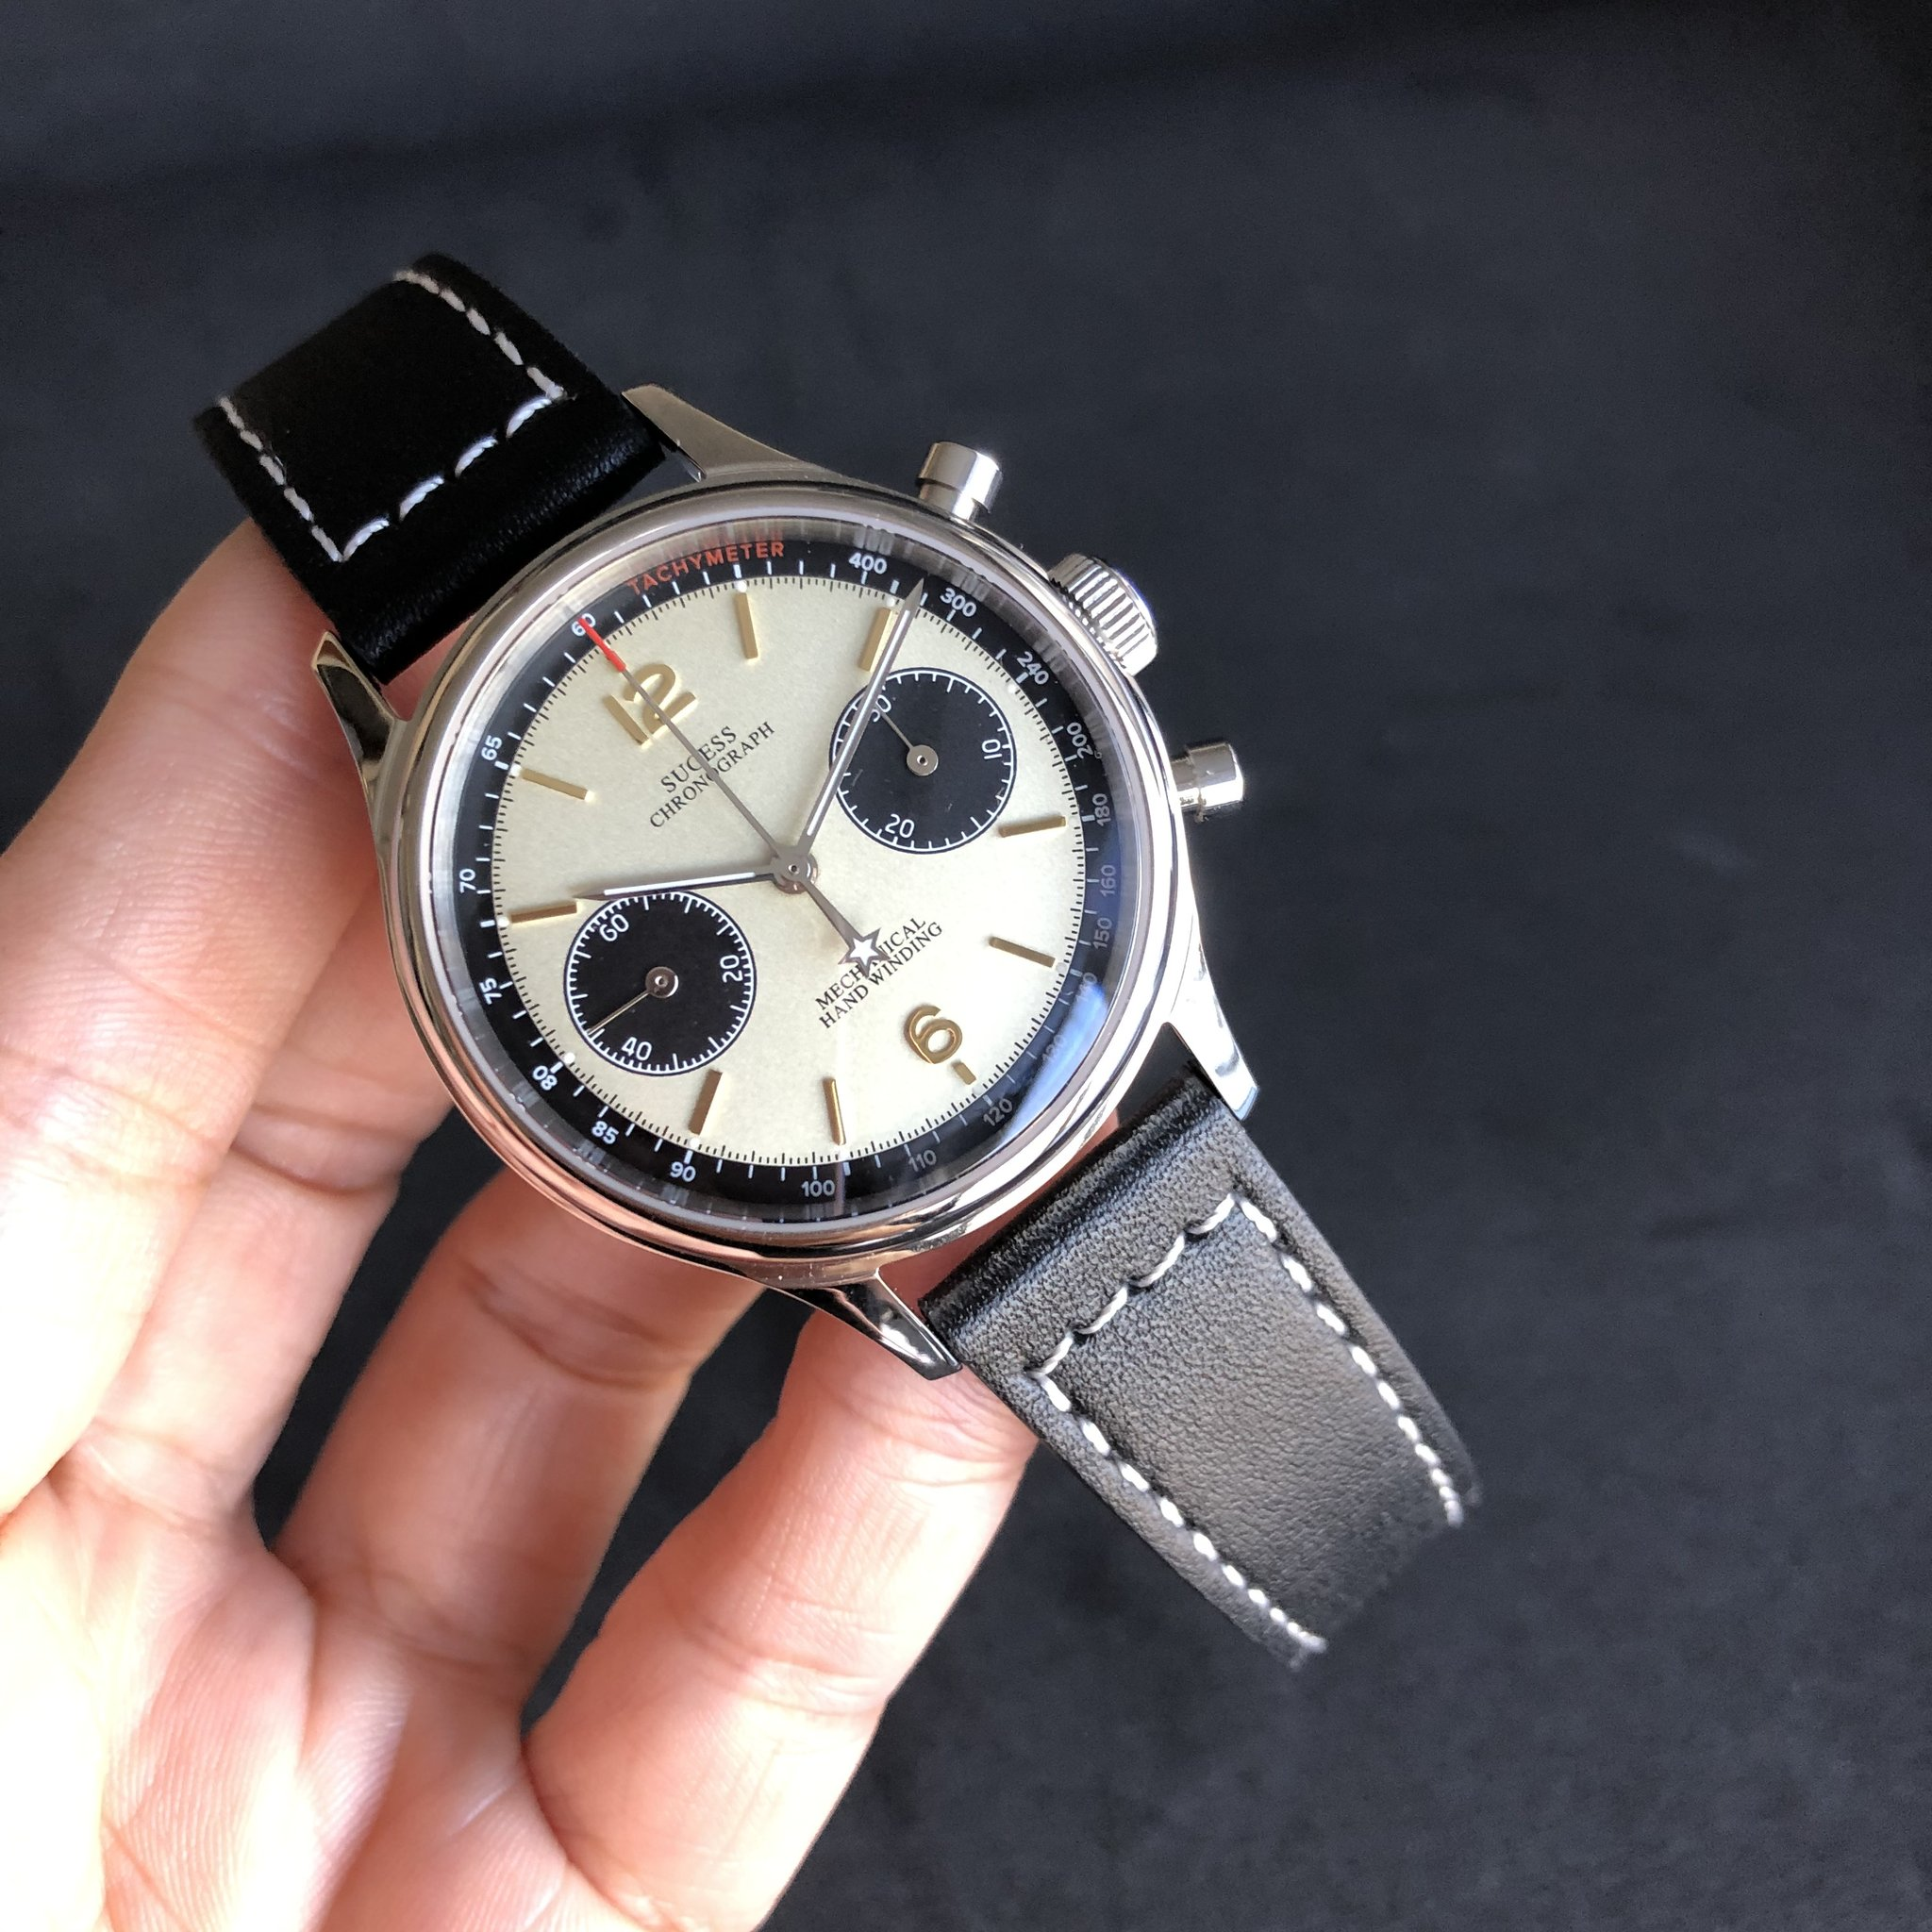 Sugess Chrono Heritage series in White, Champagne and Black